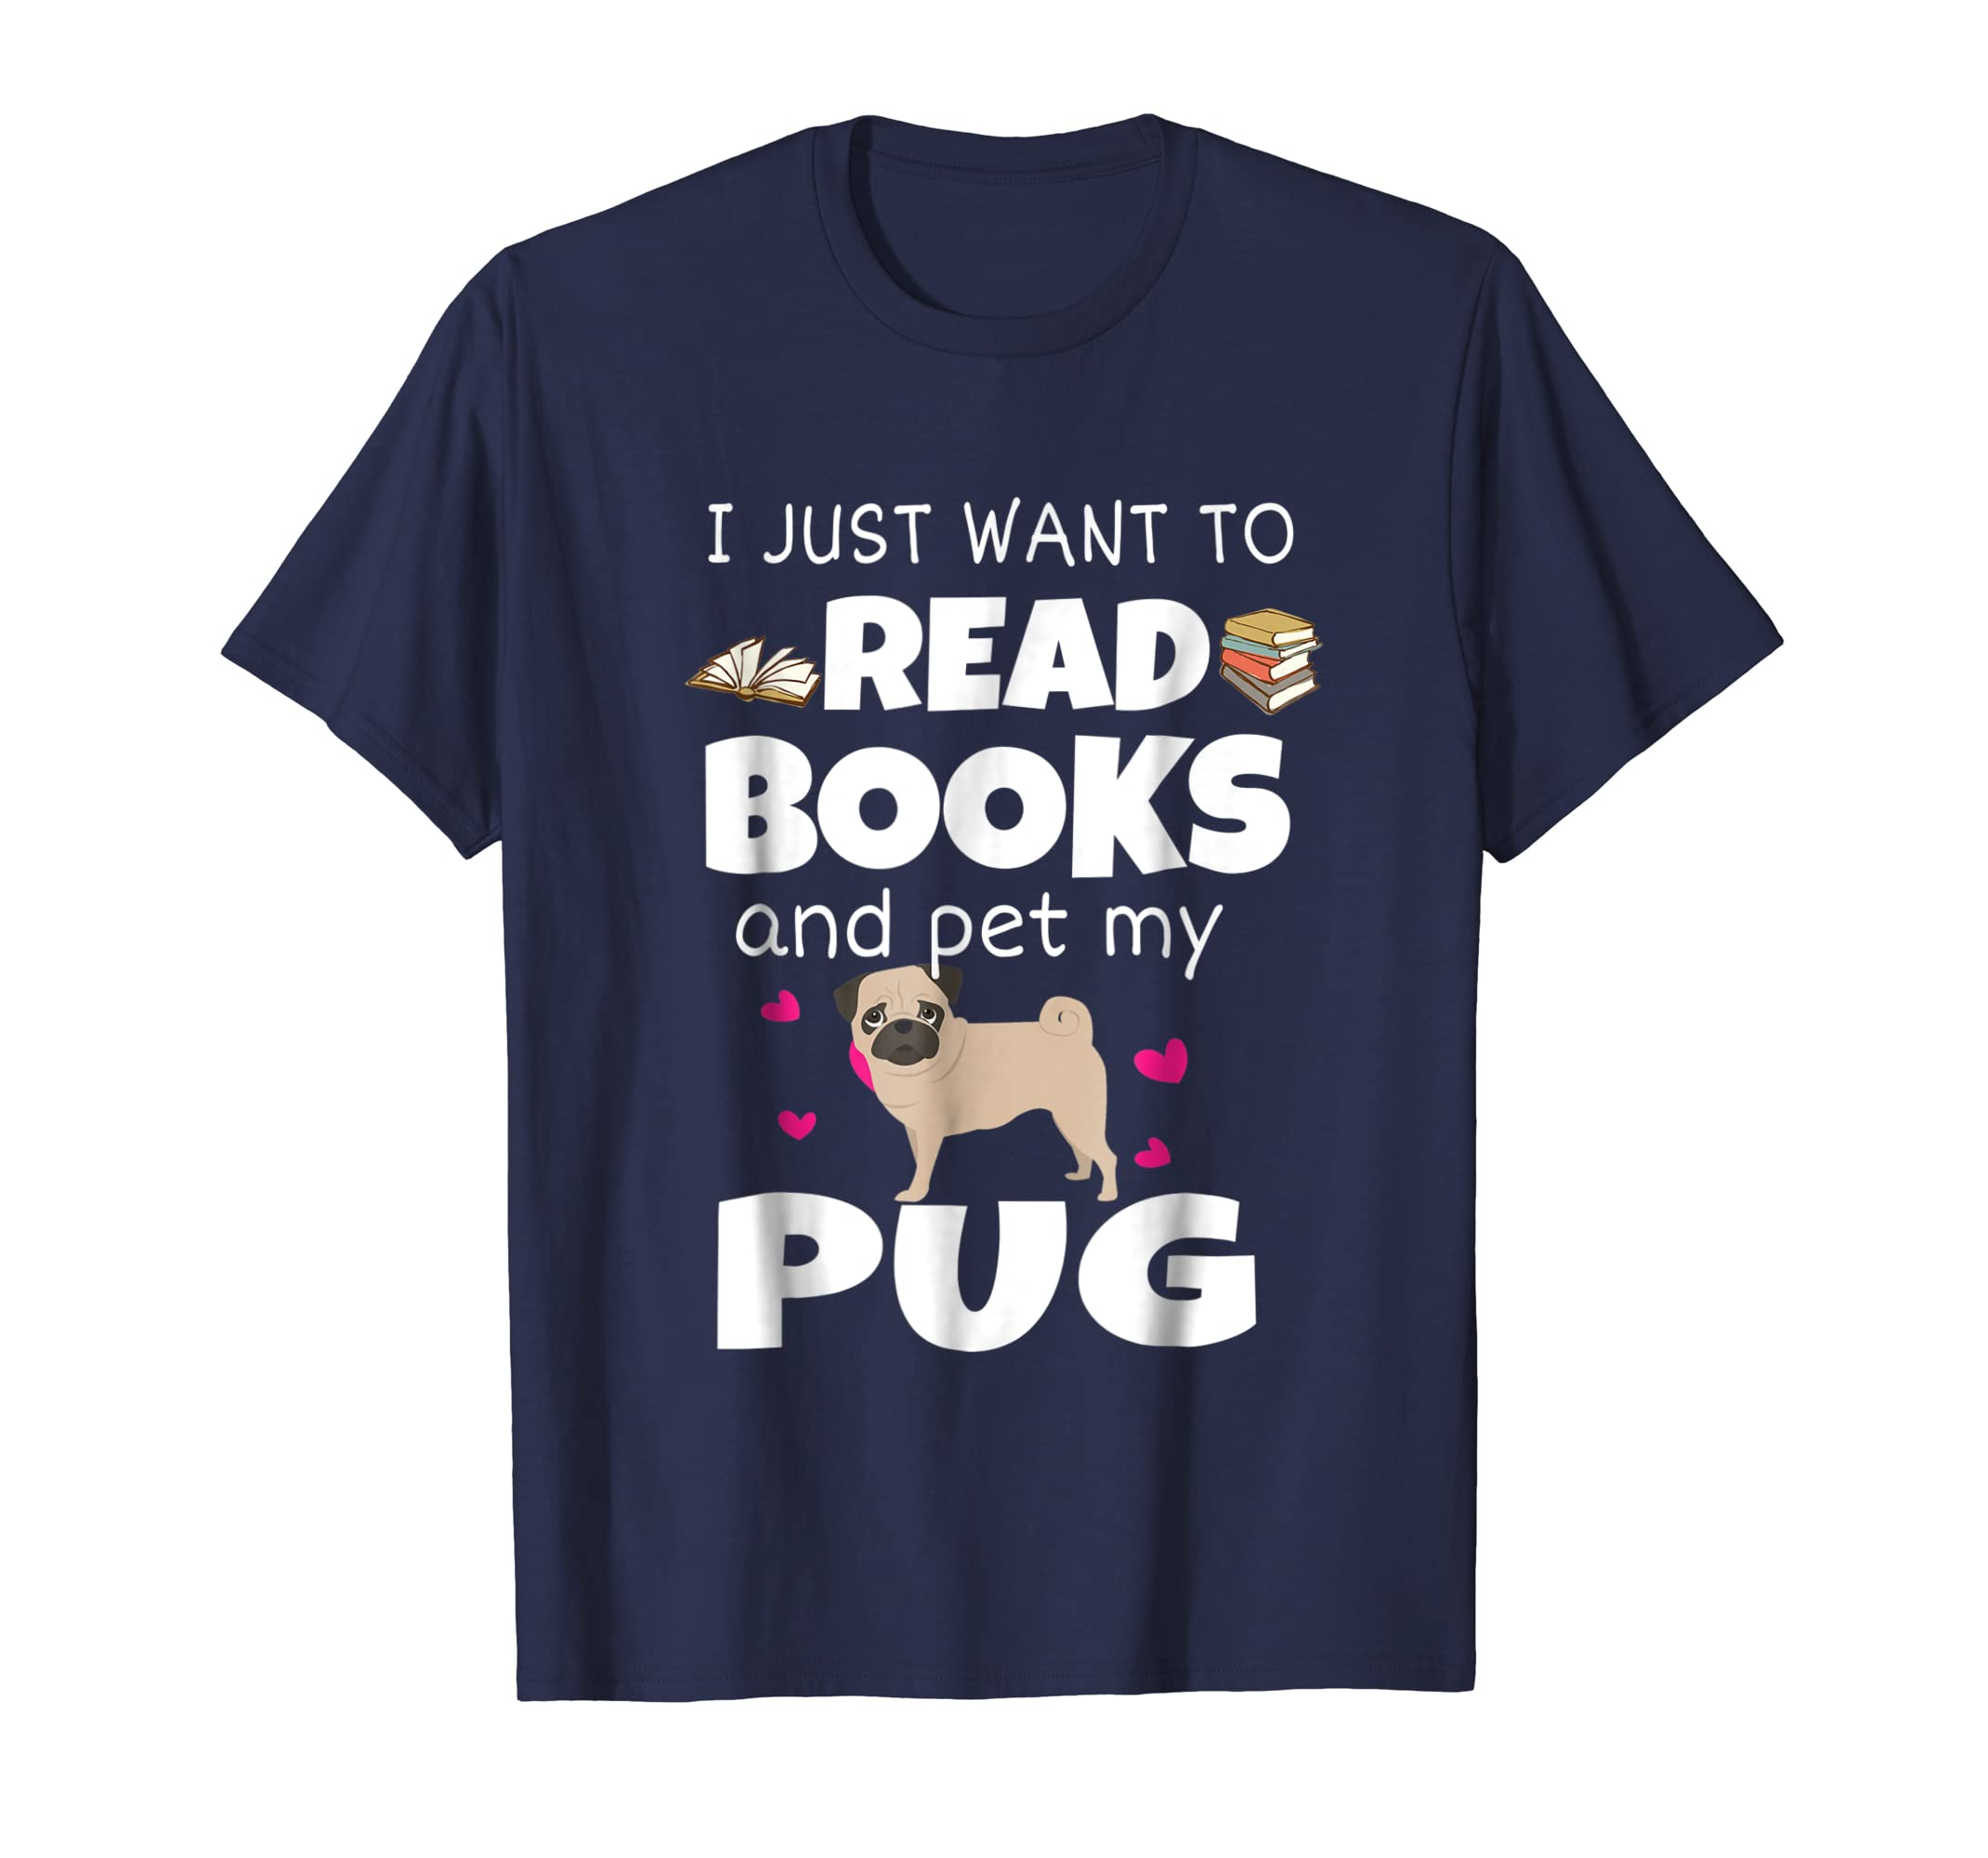 Loves Pug And Read Books Funny T shirt For Dogs Lover-AZP